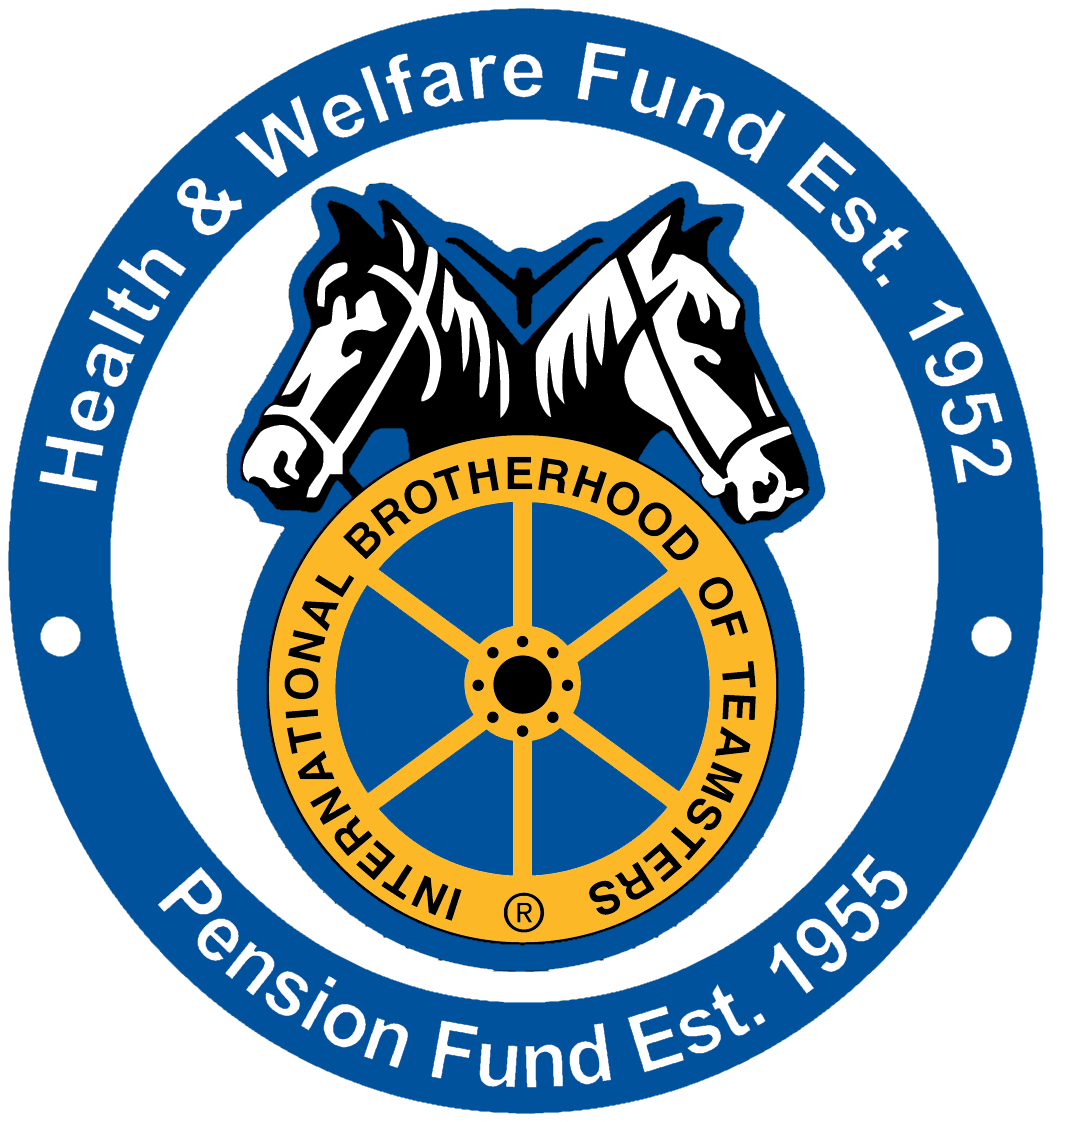 CENTRAL PENNSYLVANIA TEAMSTERS | Health Benefits & Pensions